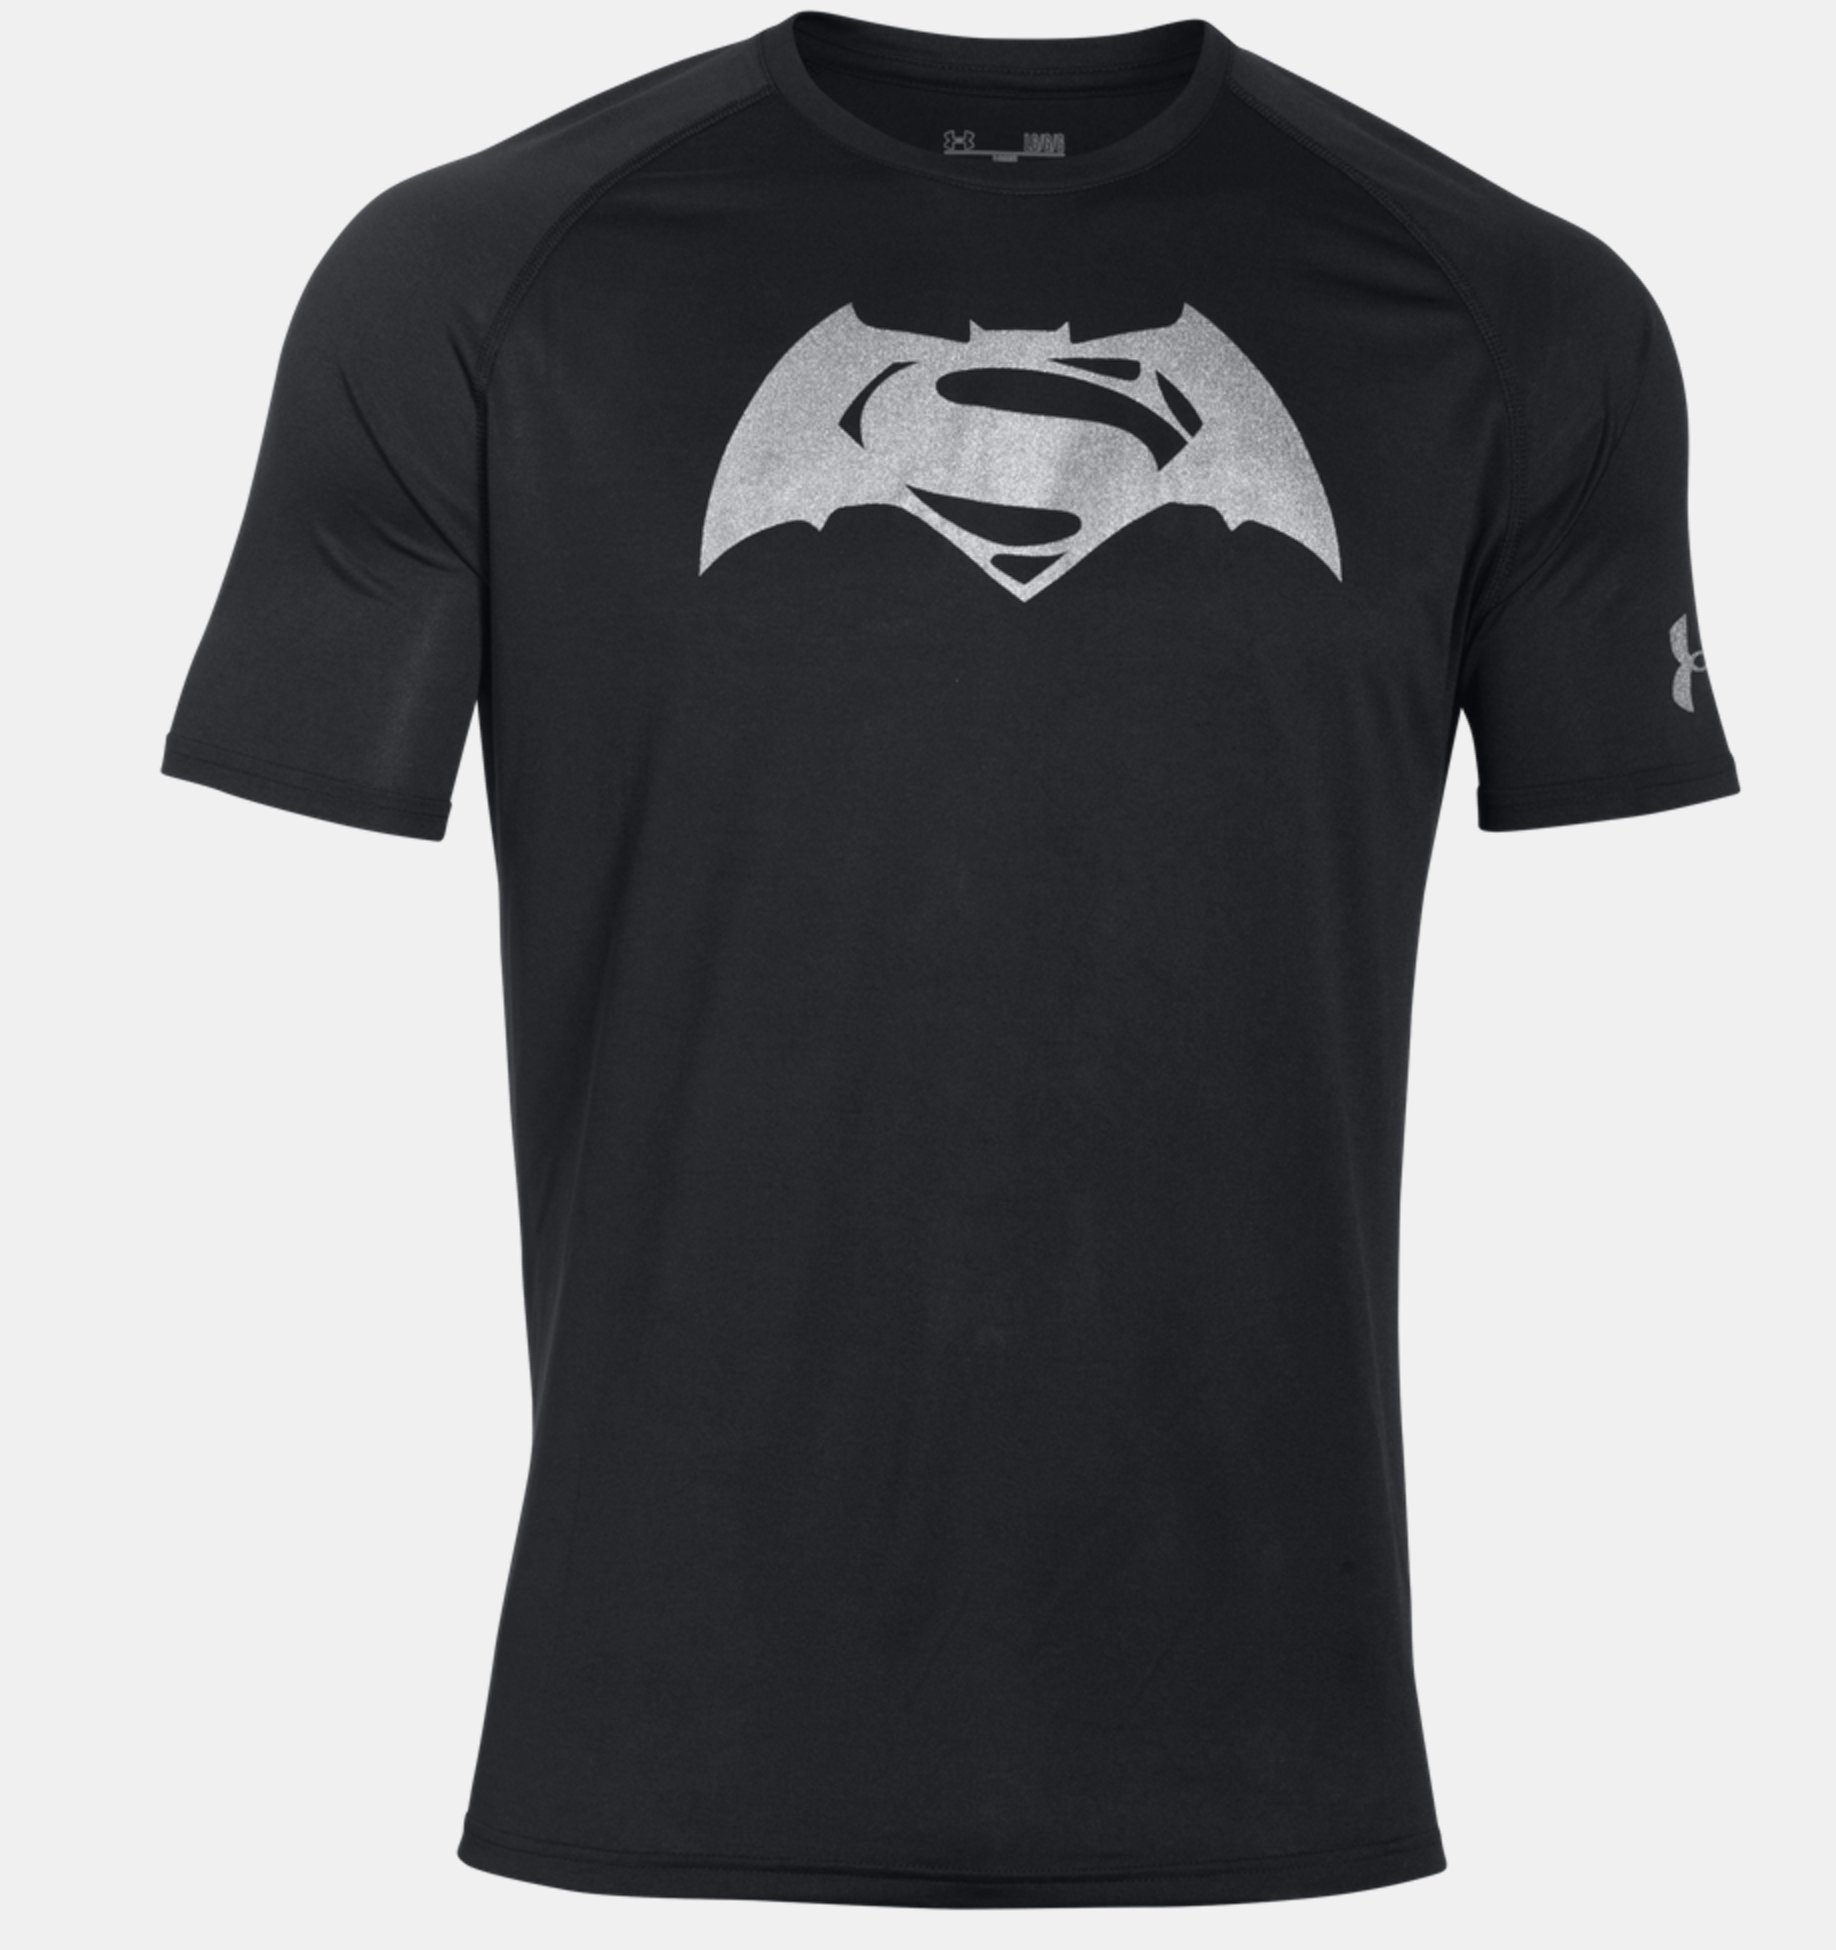 1cceeceaf2f77 Playera Under Armour® Alter Ego Superman v Batman para Hombre ...